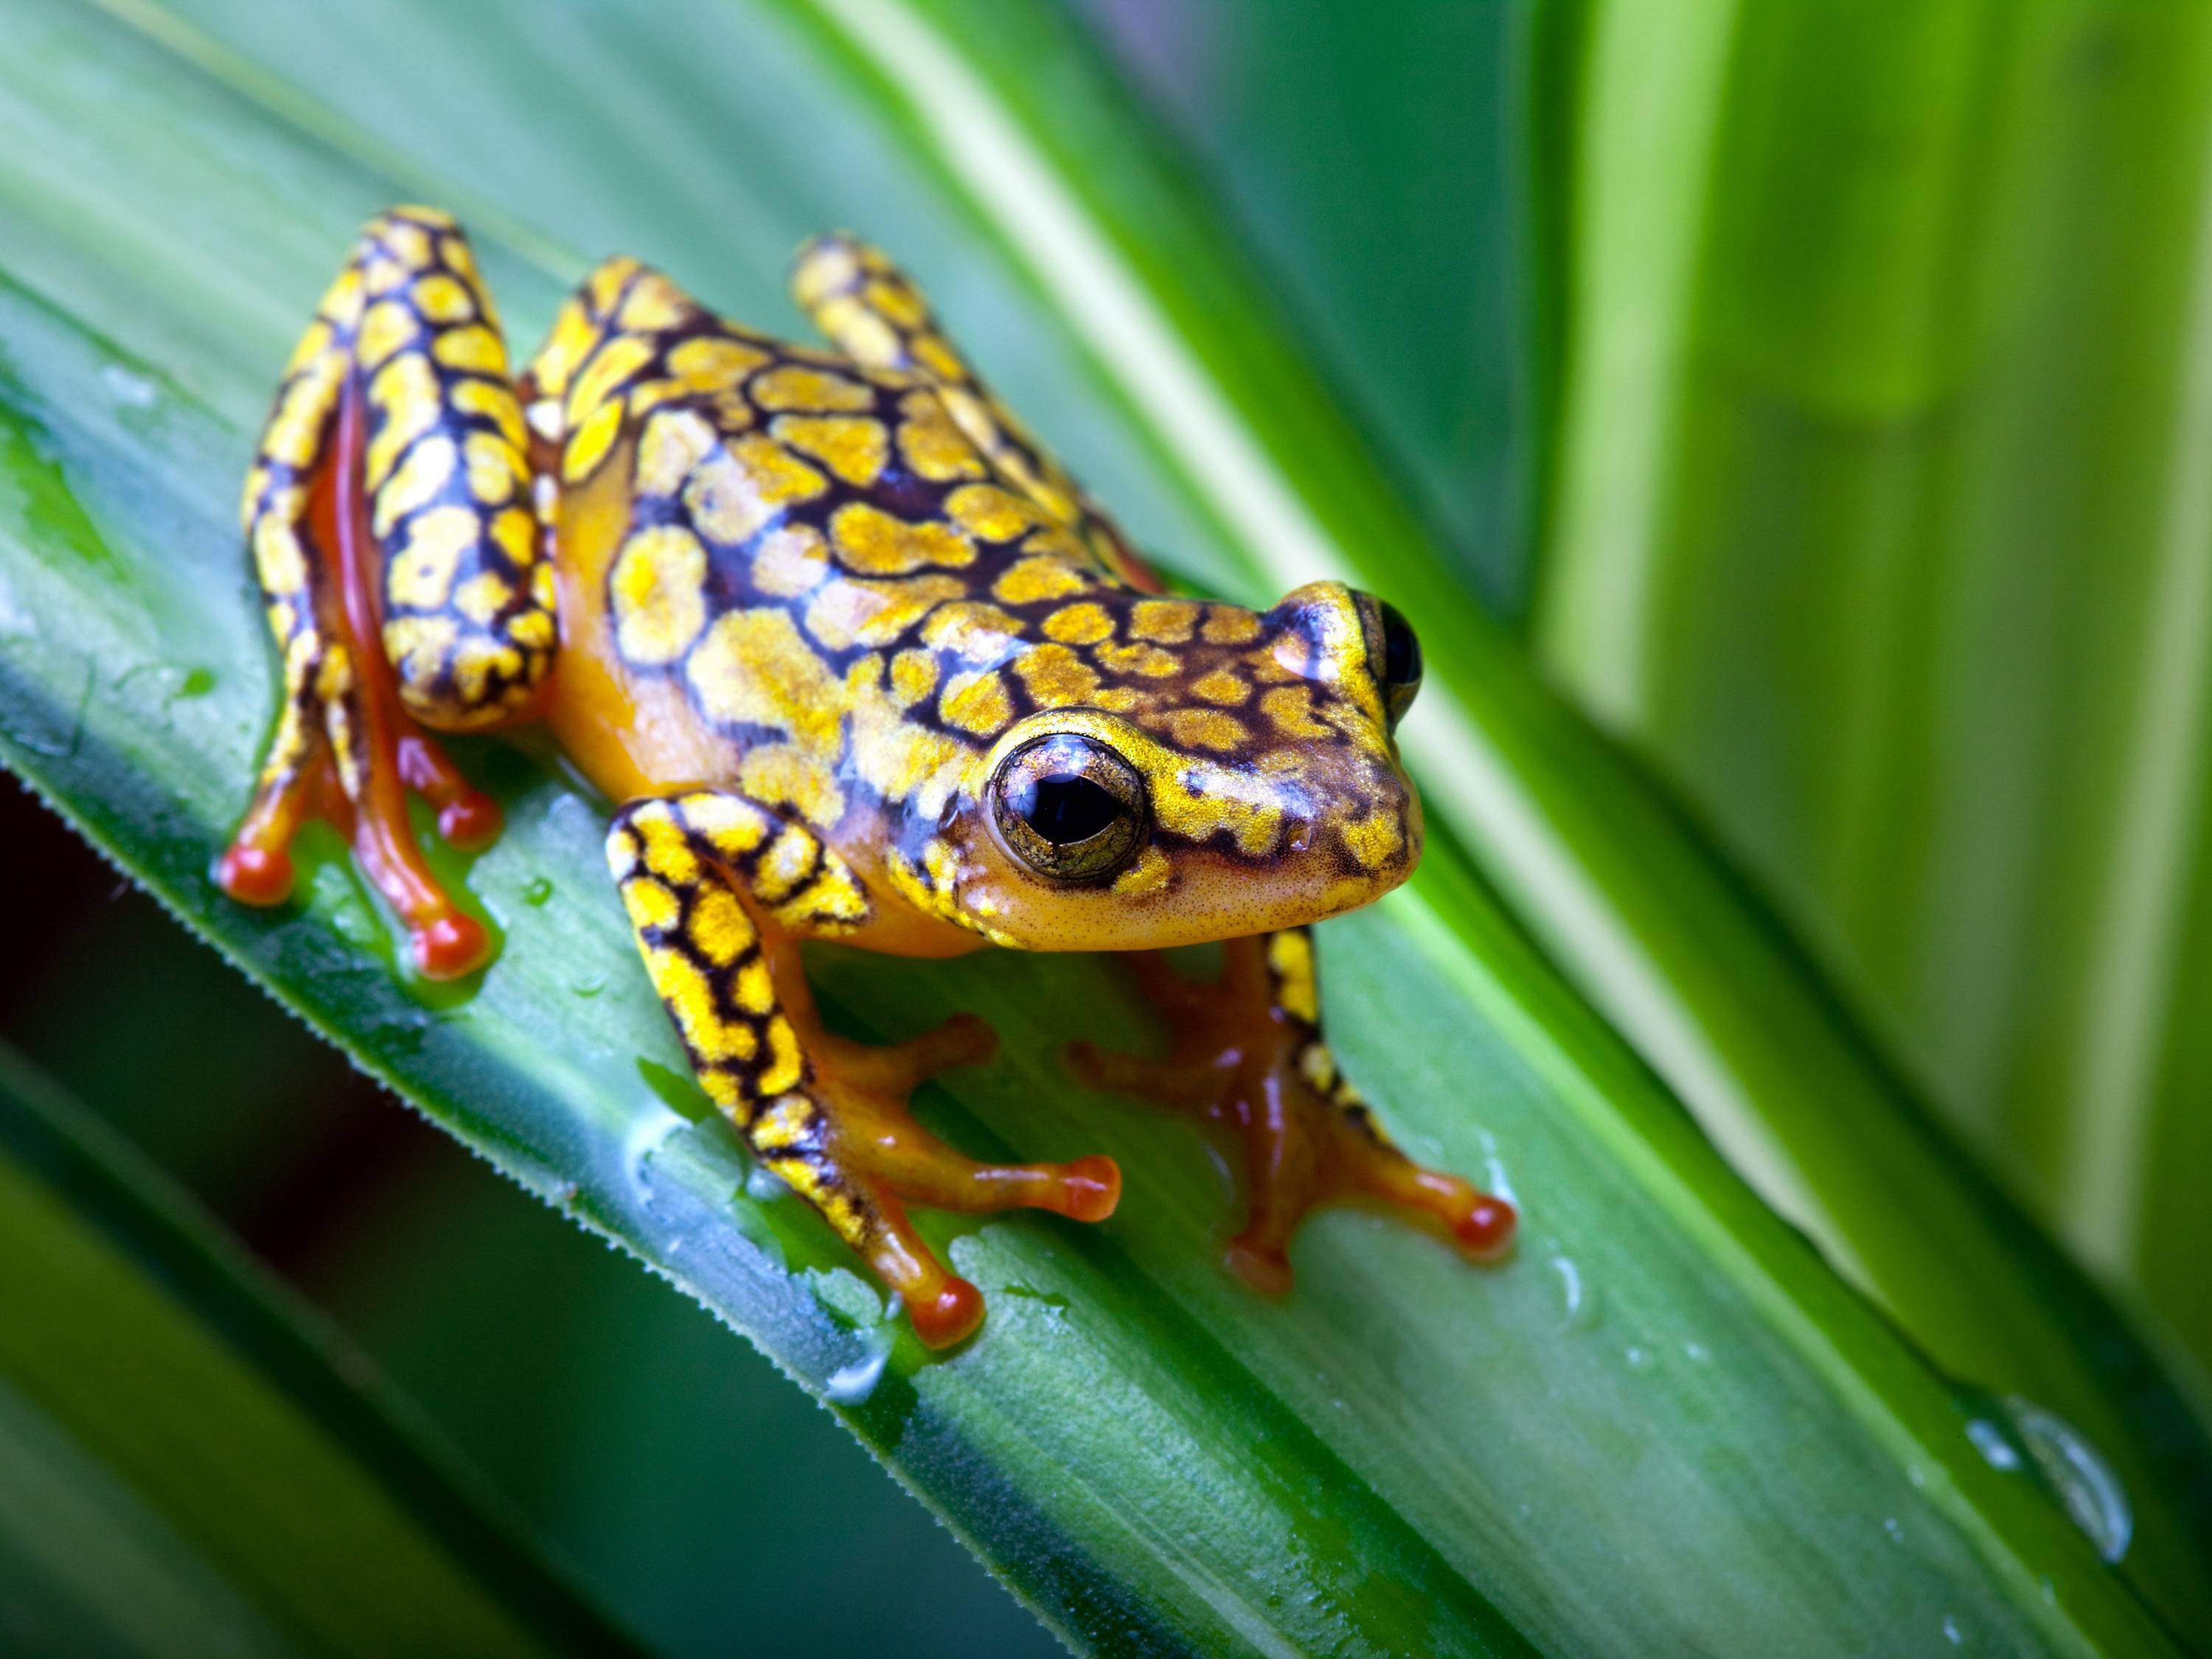 Download Frog Wallpapers 11921 3000x2250 px High Resolution